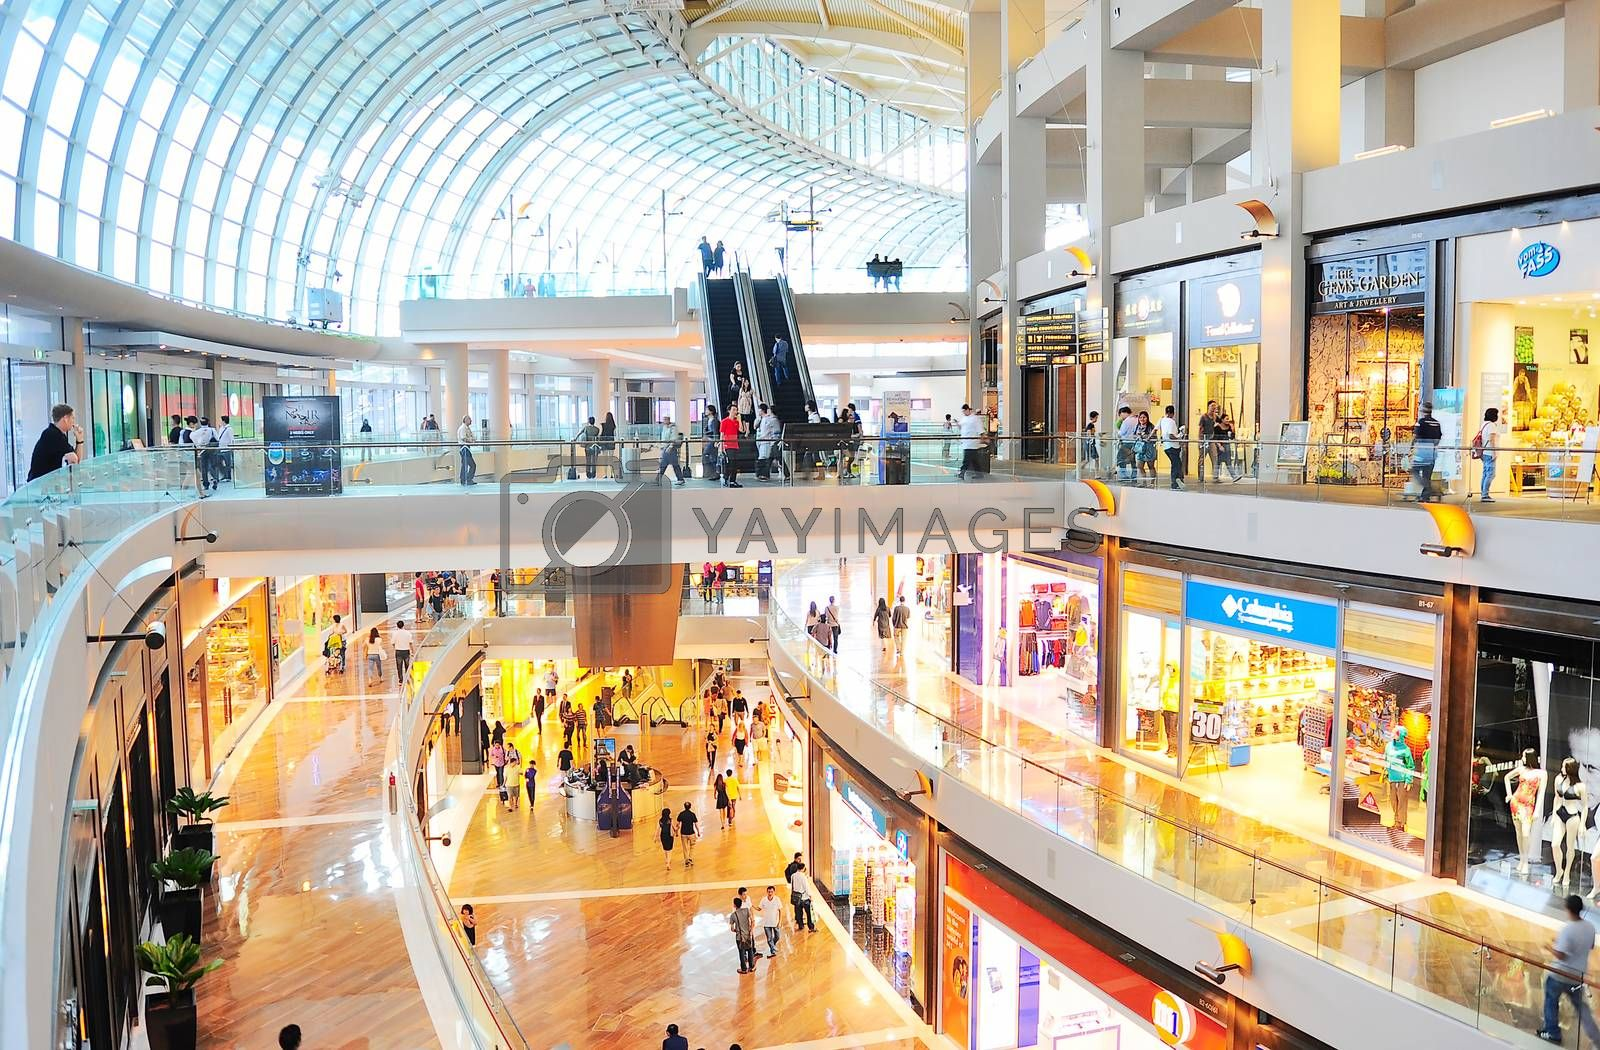 SINGAPORE - MARCH 08, 2013: Shopping mall at Marina Bay Sands Resort in Singapore. It is billed as the world's most expensive standalone casino property at S$8 billion